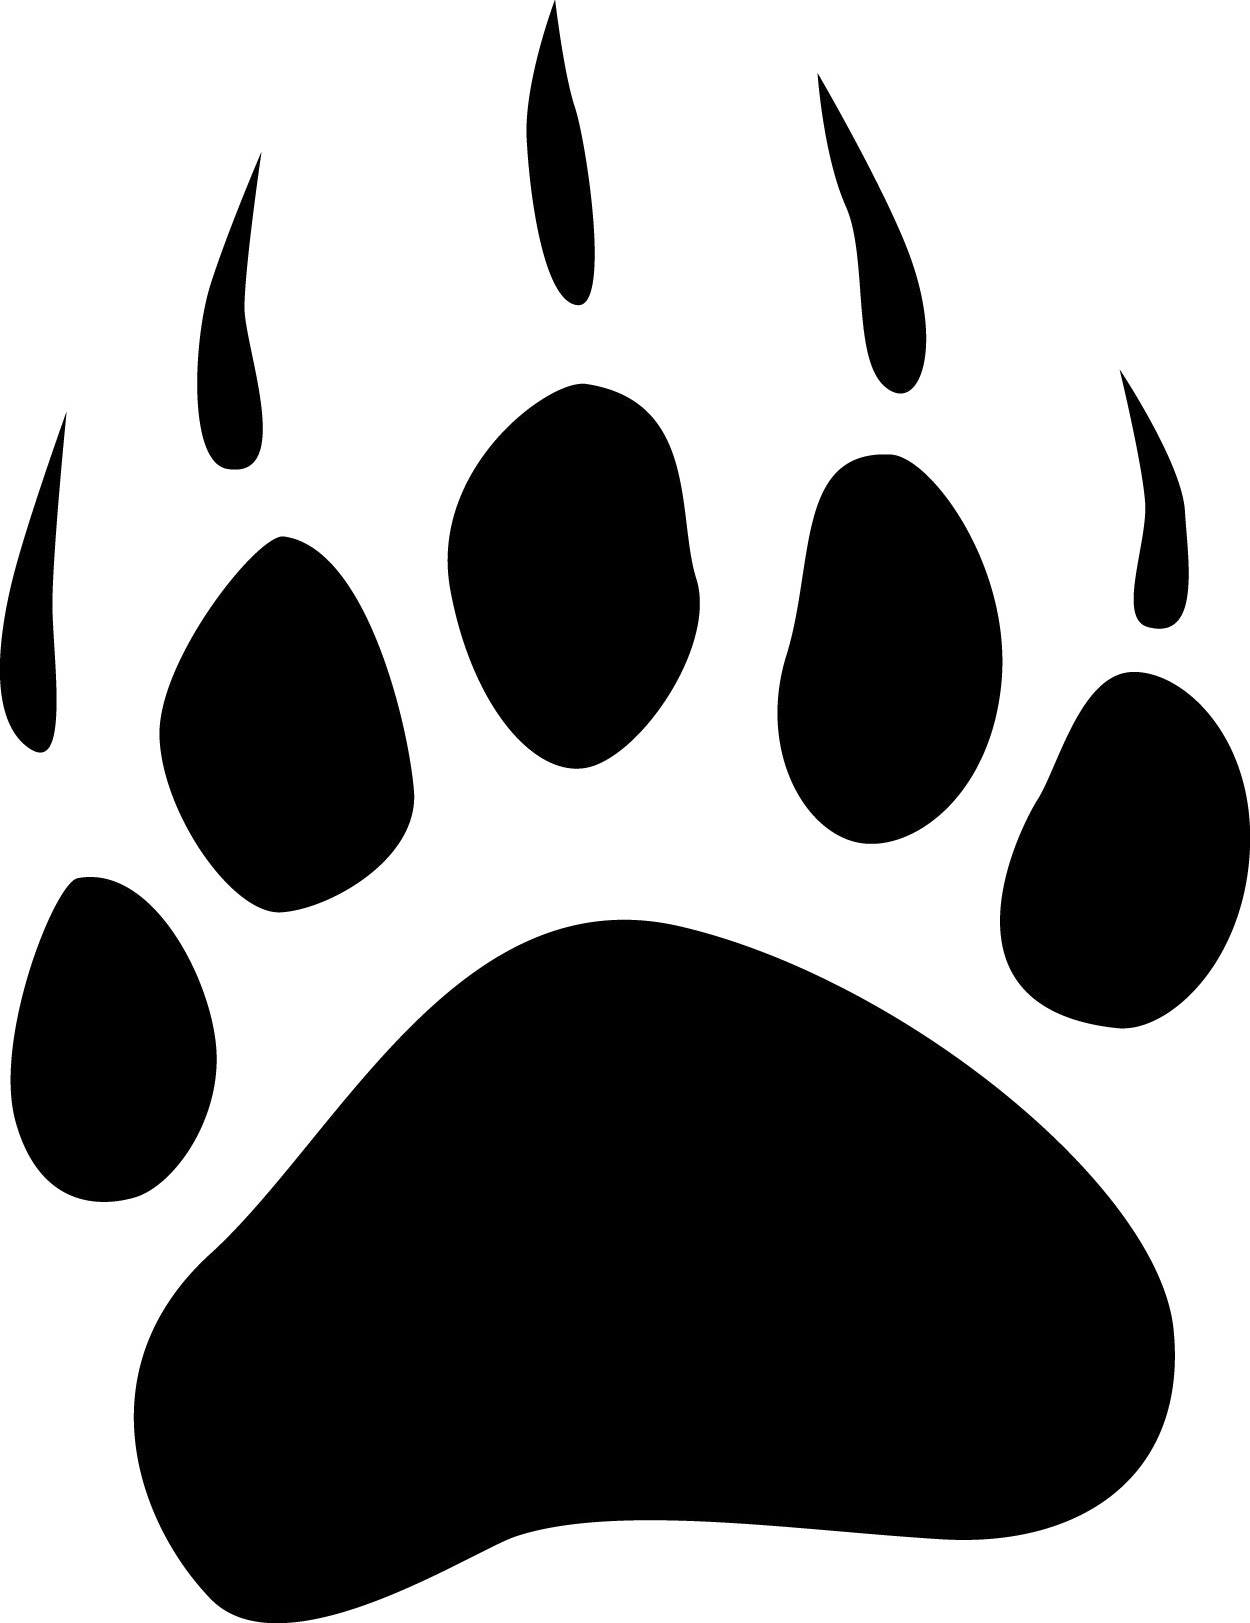 Bear Claws Images Stock Photos amp Vectors  Shutterstock